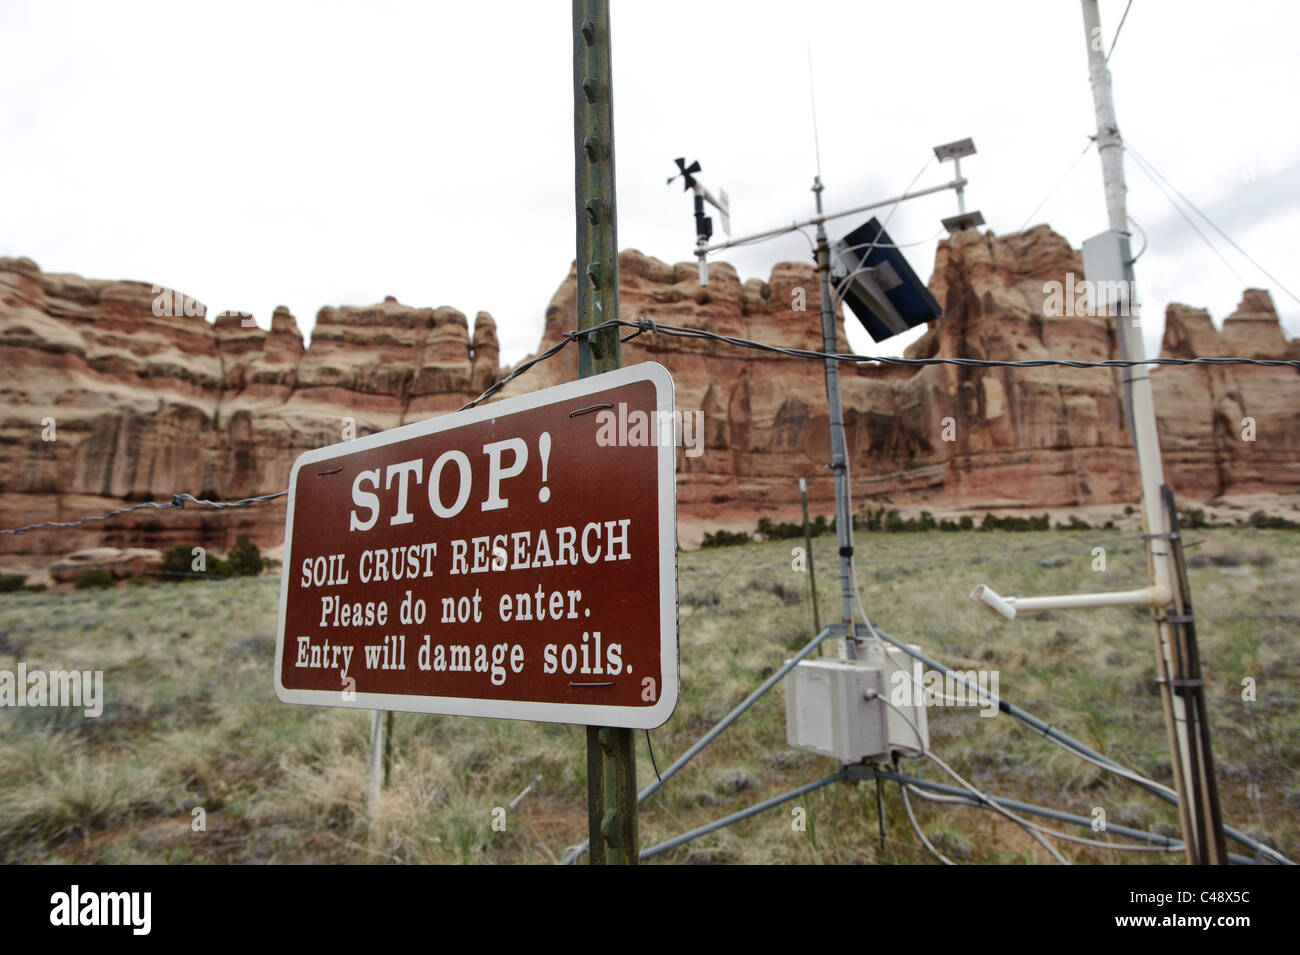 USGS weather station, Needles District, Canyonlands NP, UT - Stock Image